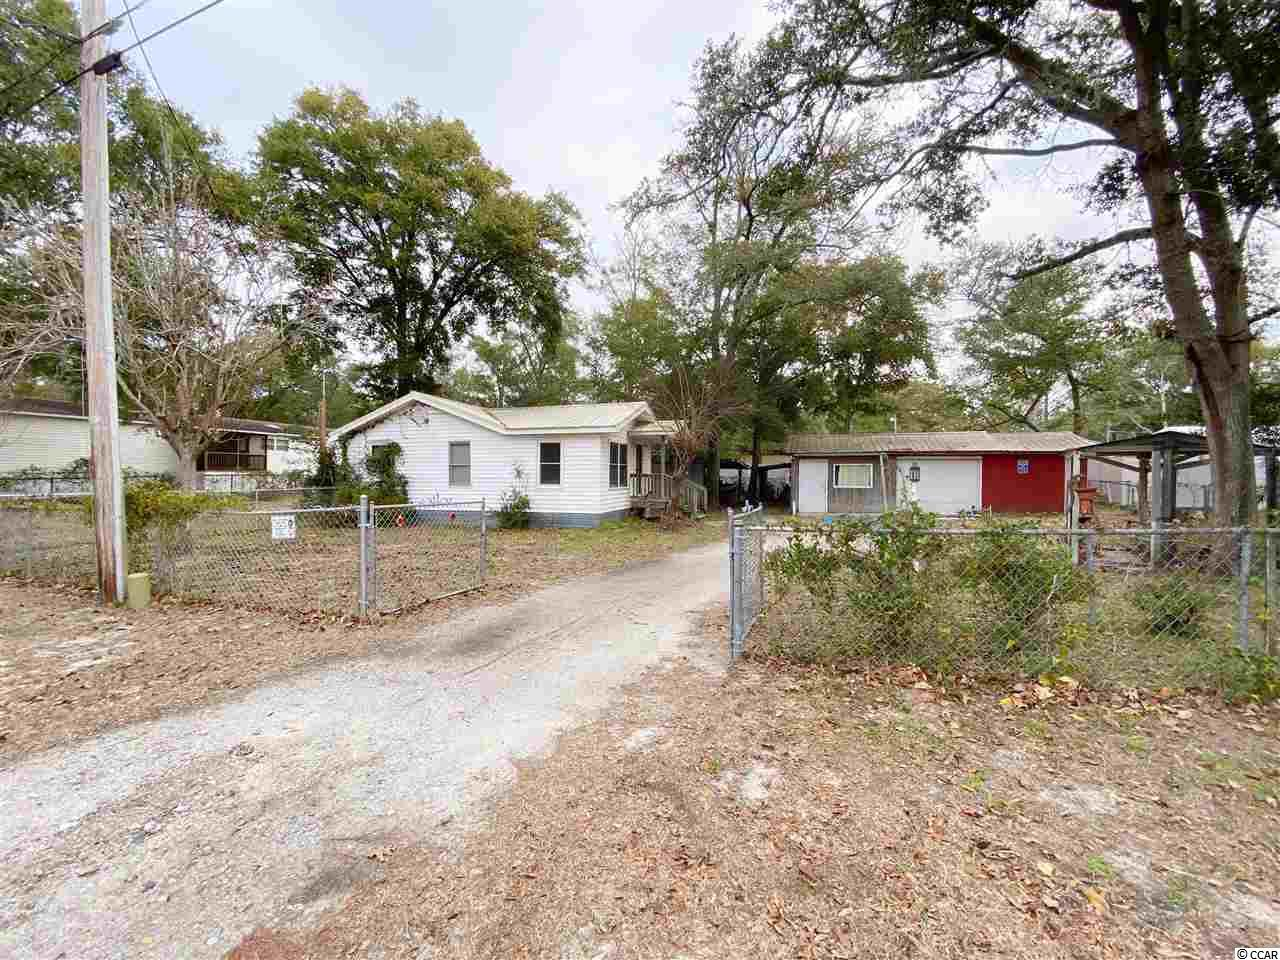 HANDYMAN SPECIAL!!! The lot is where the value is. One of the largest lots in The Grove, double size lot! This is a 1956 single wide manufactured home that has been added on throughout the years. There is a small apartment built in the shed with a tenant in place. Great rental potential! Buyer is responsible for all measurement verification!